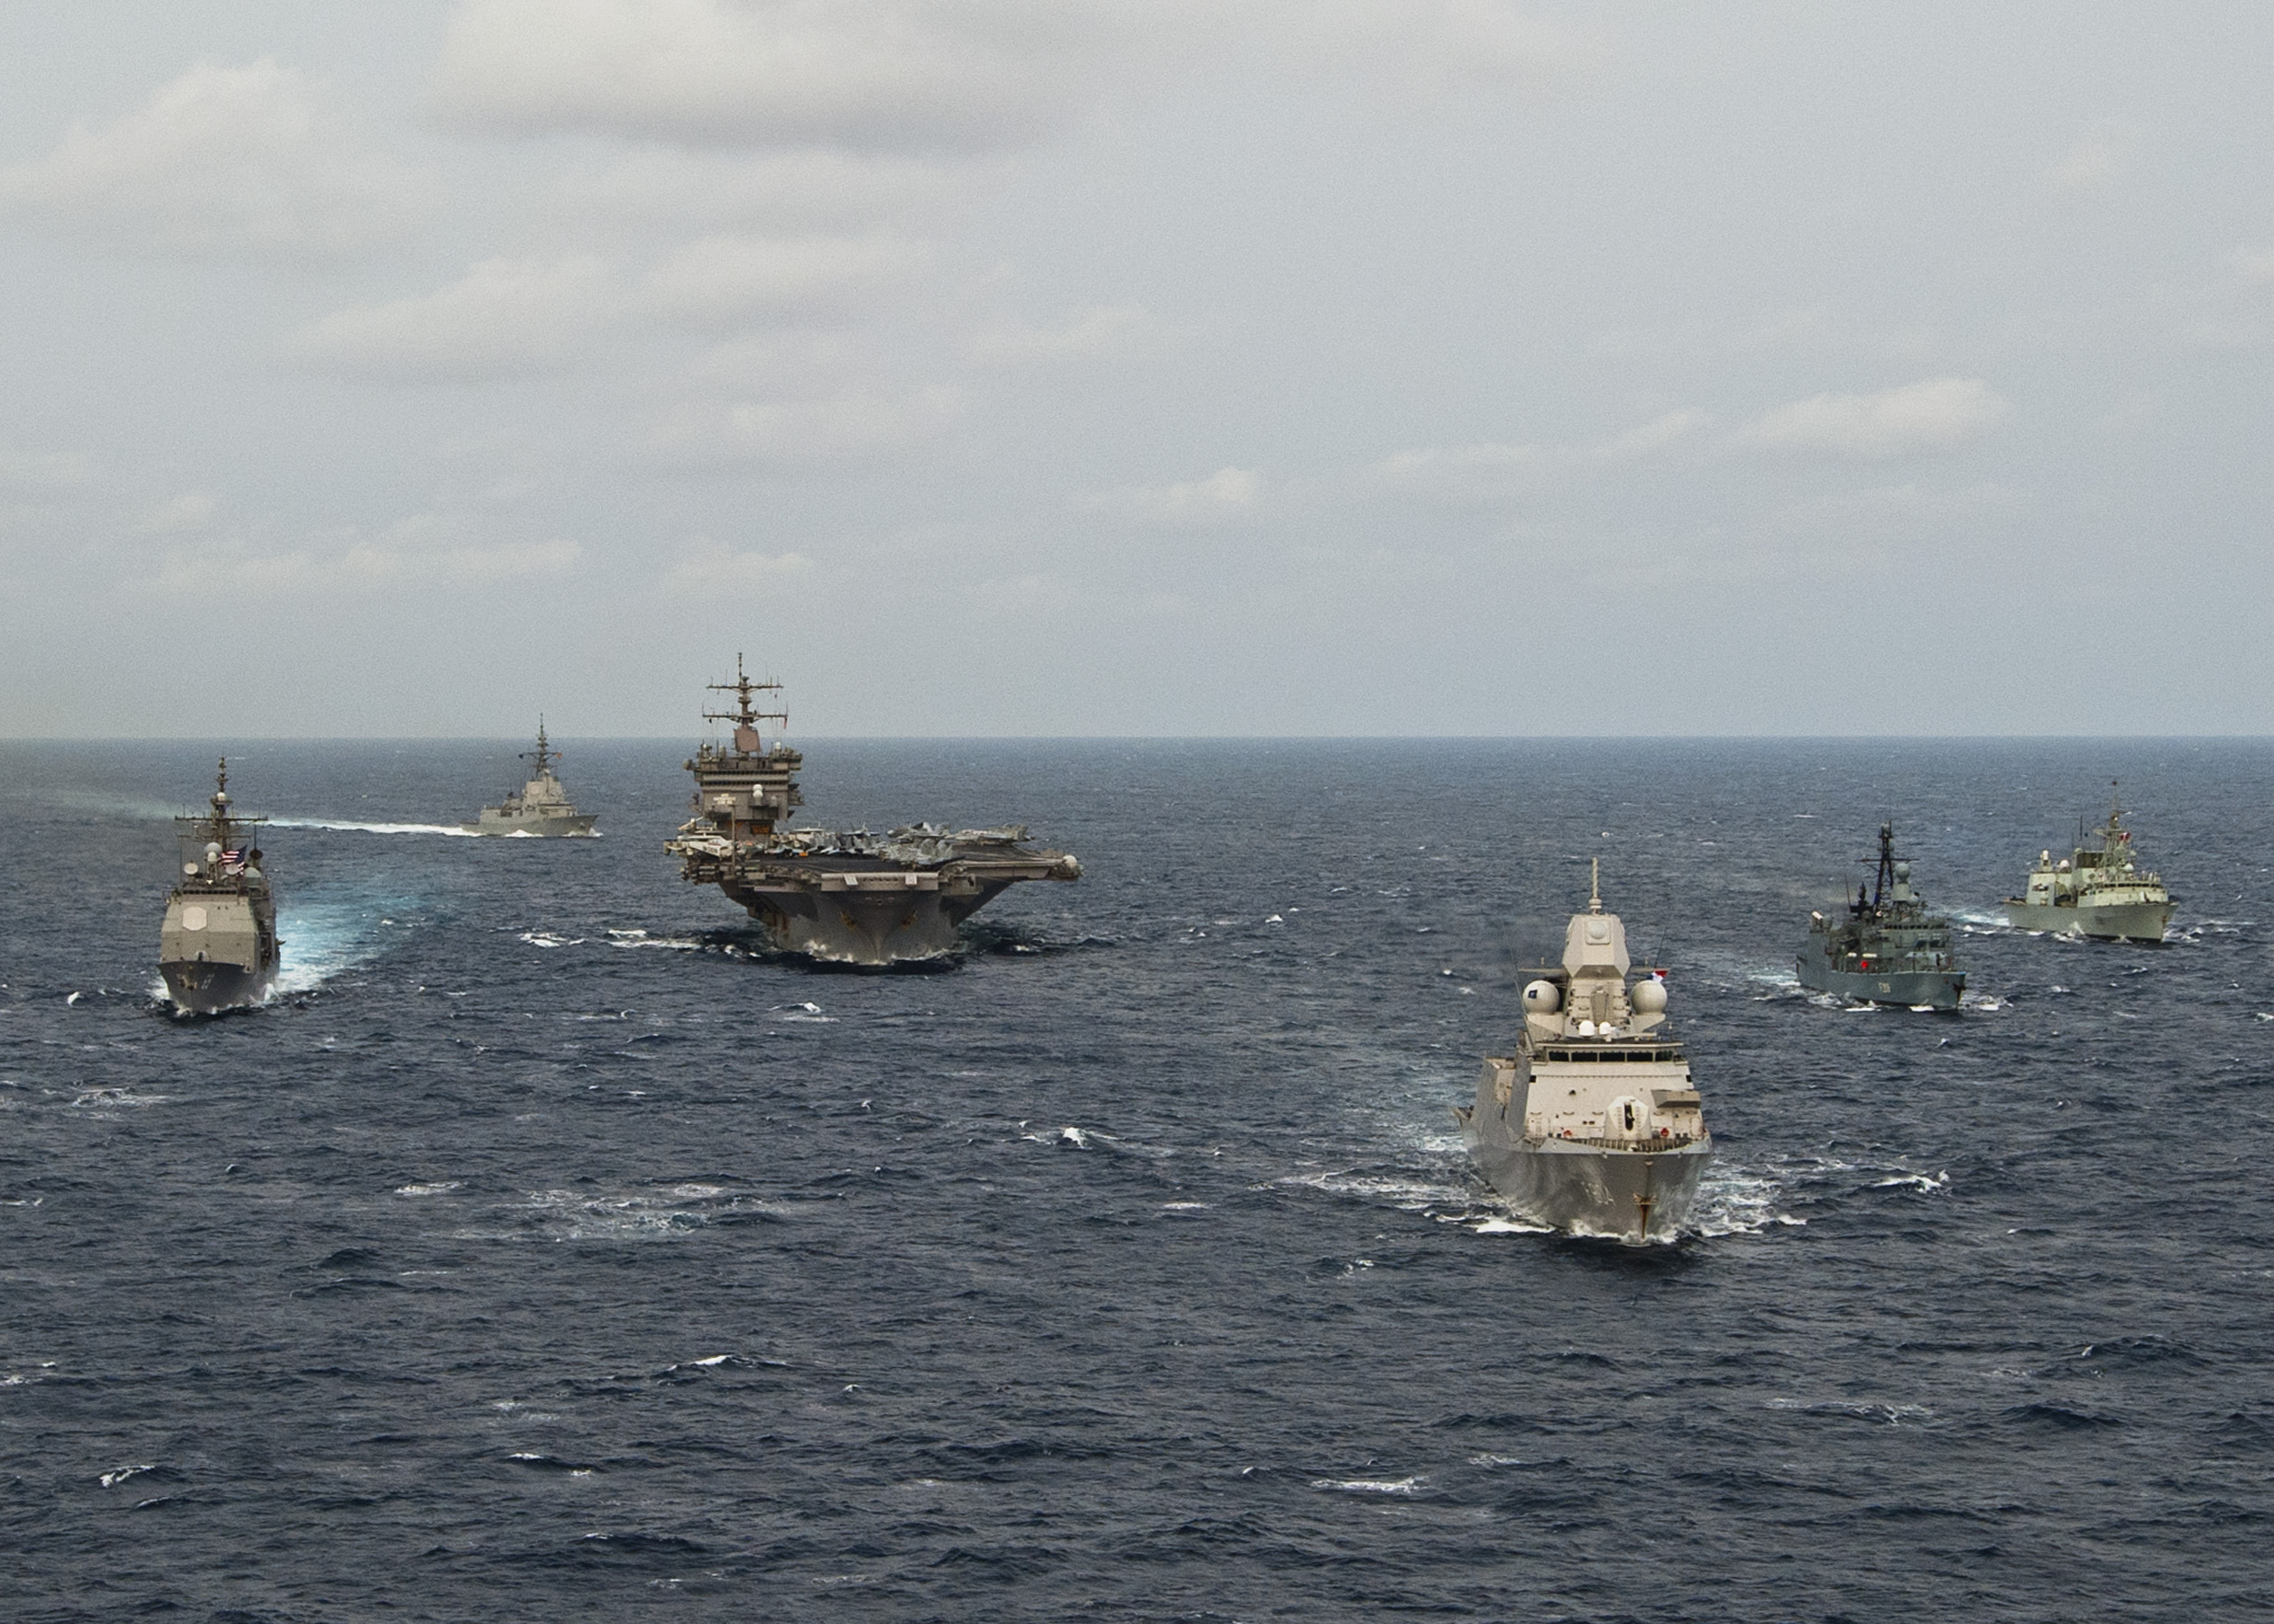 Global Federation National News Network! Carrier_Strike_Group_12_-_Standing_NATO_Maritime_Group_1_PASSEX_March_2012